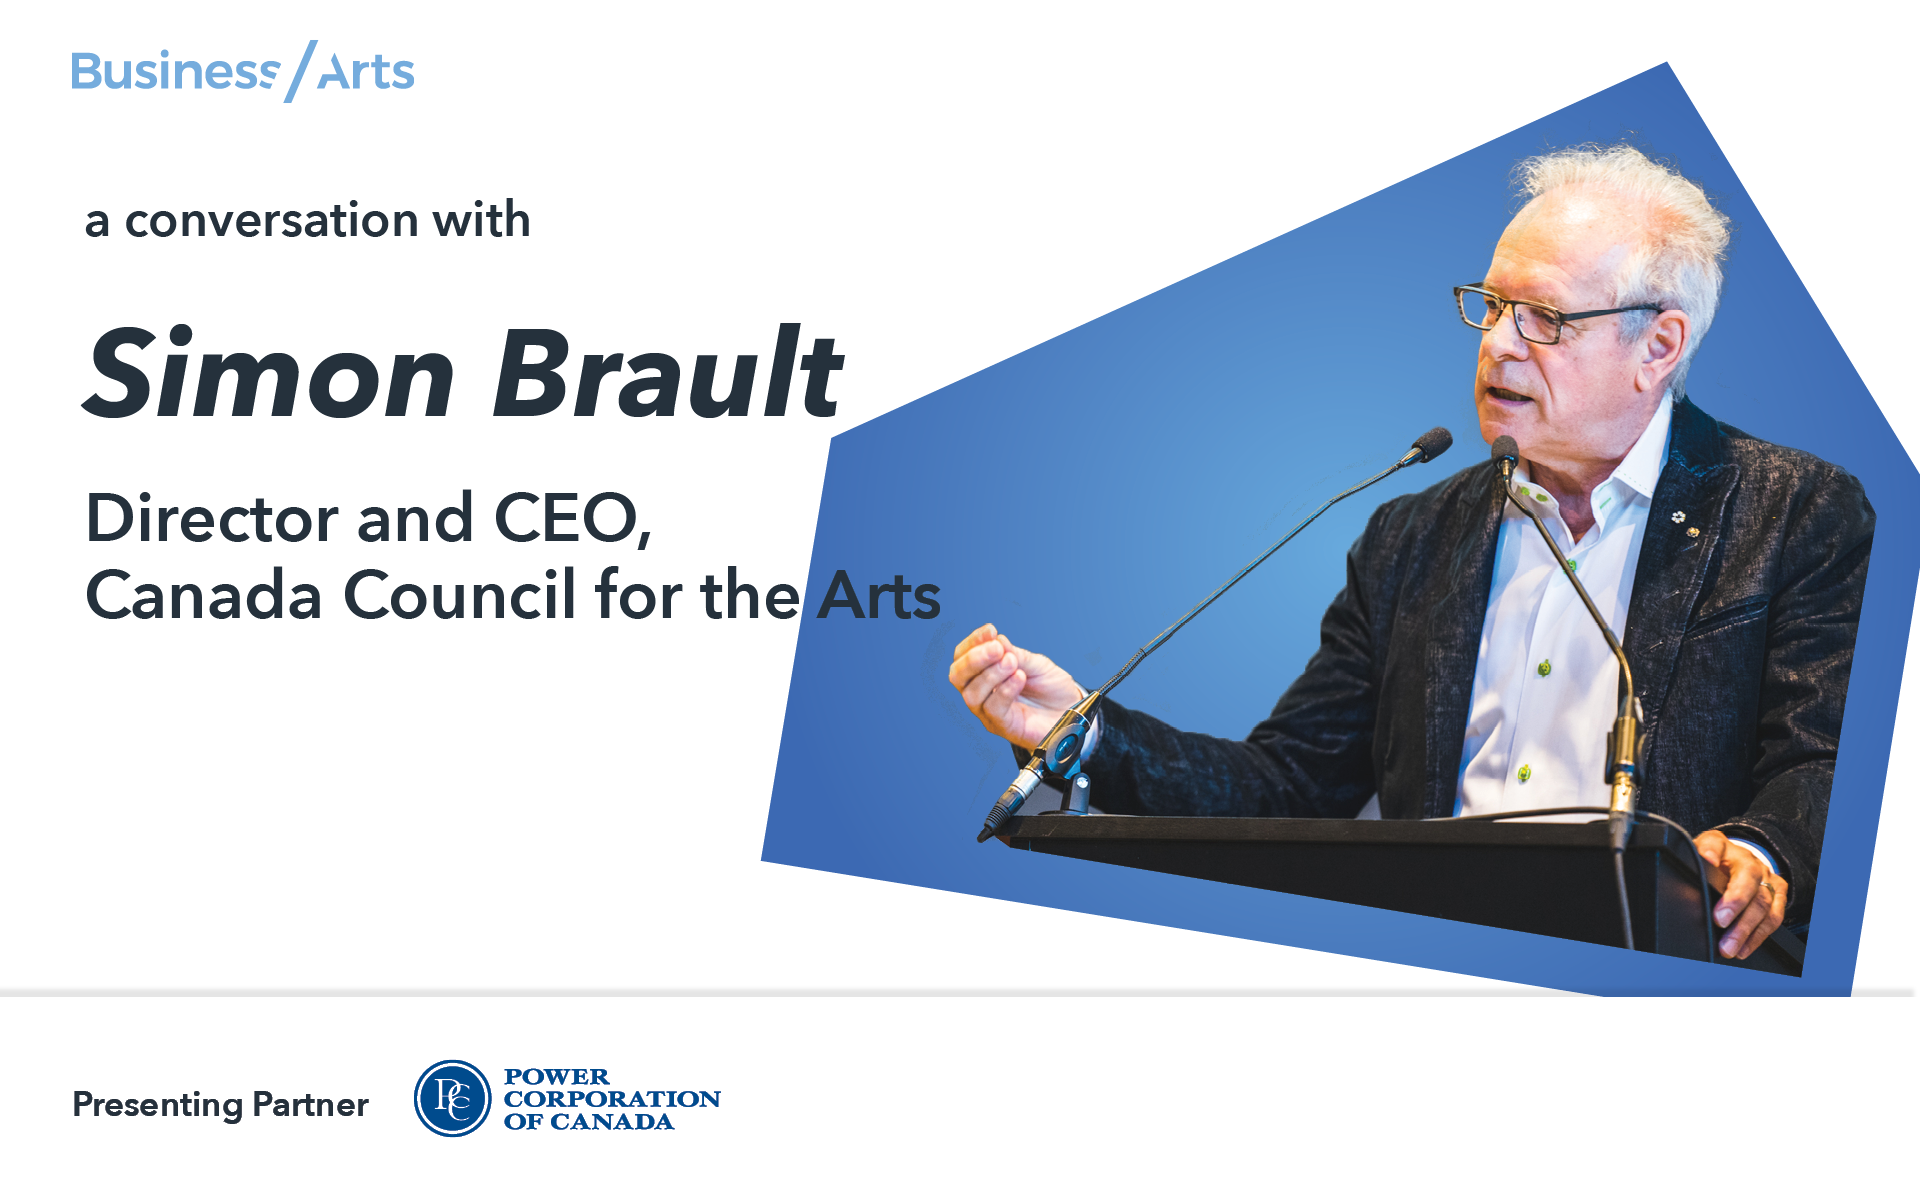 Simon Brault, Canada Council for the Arts